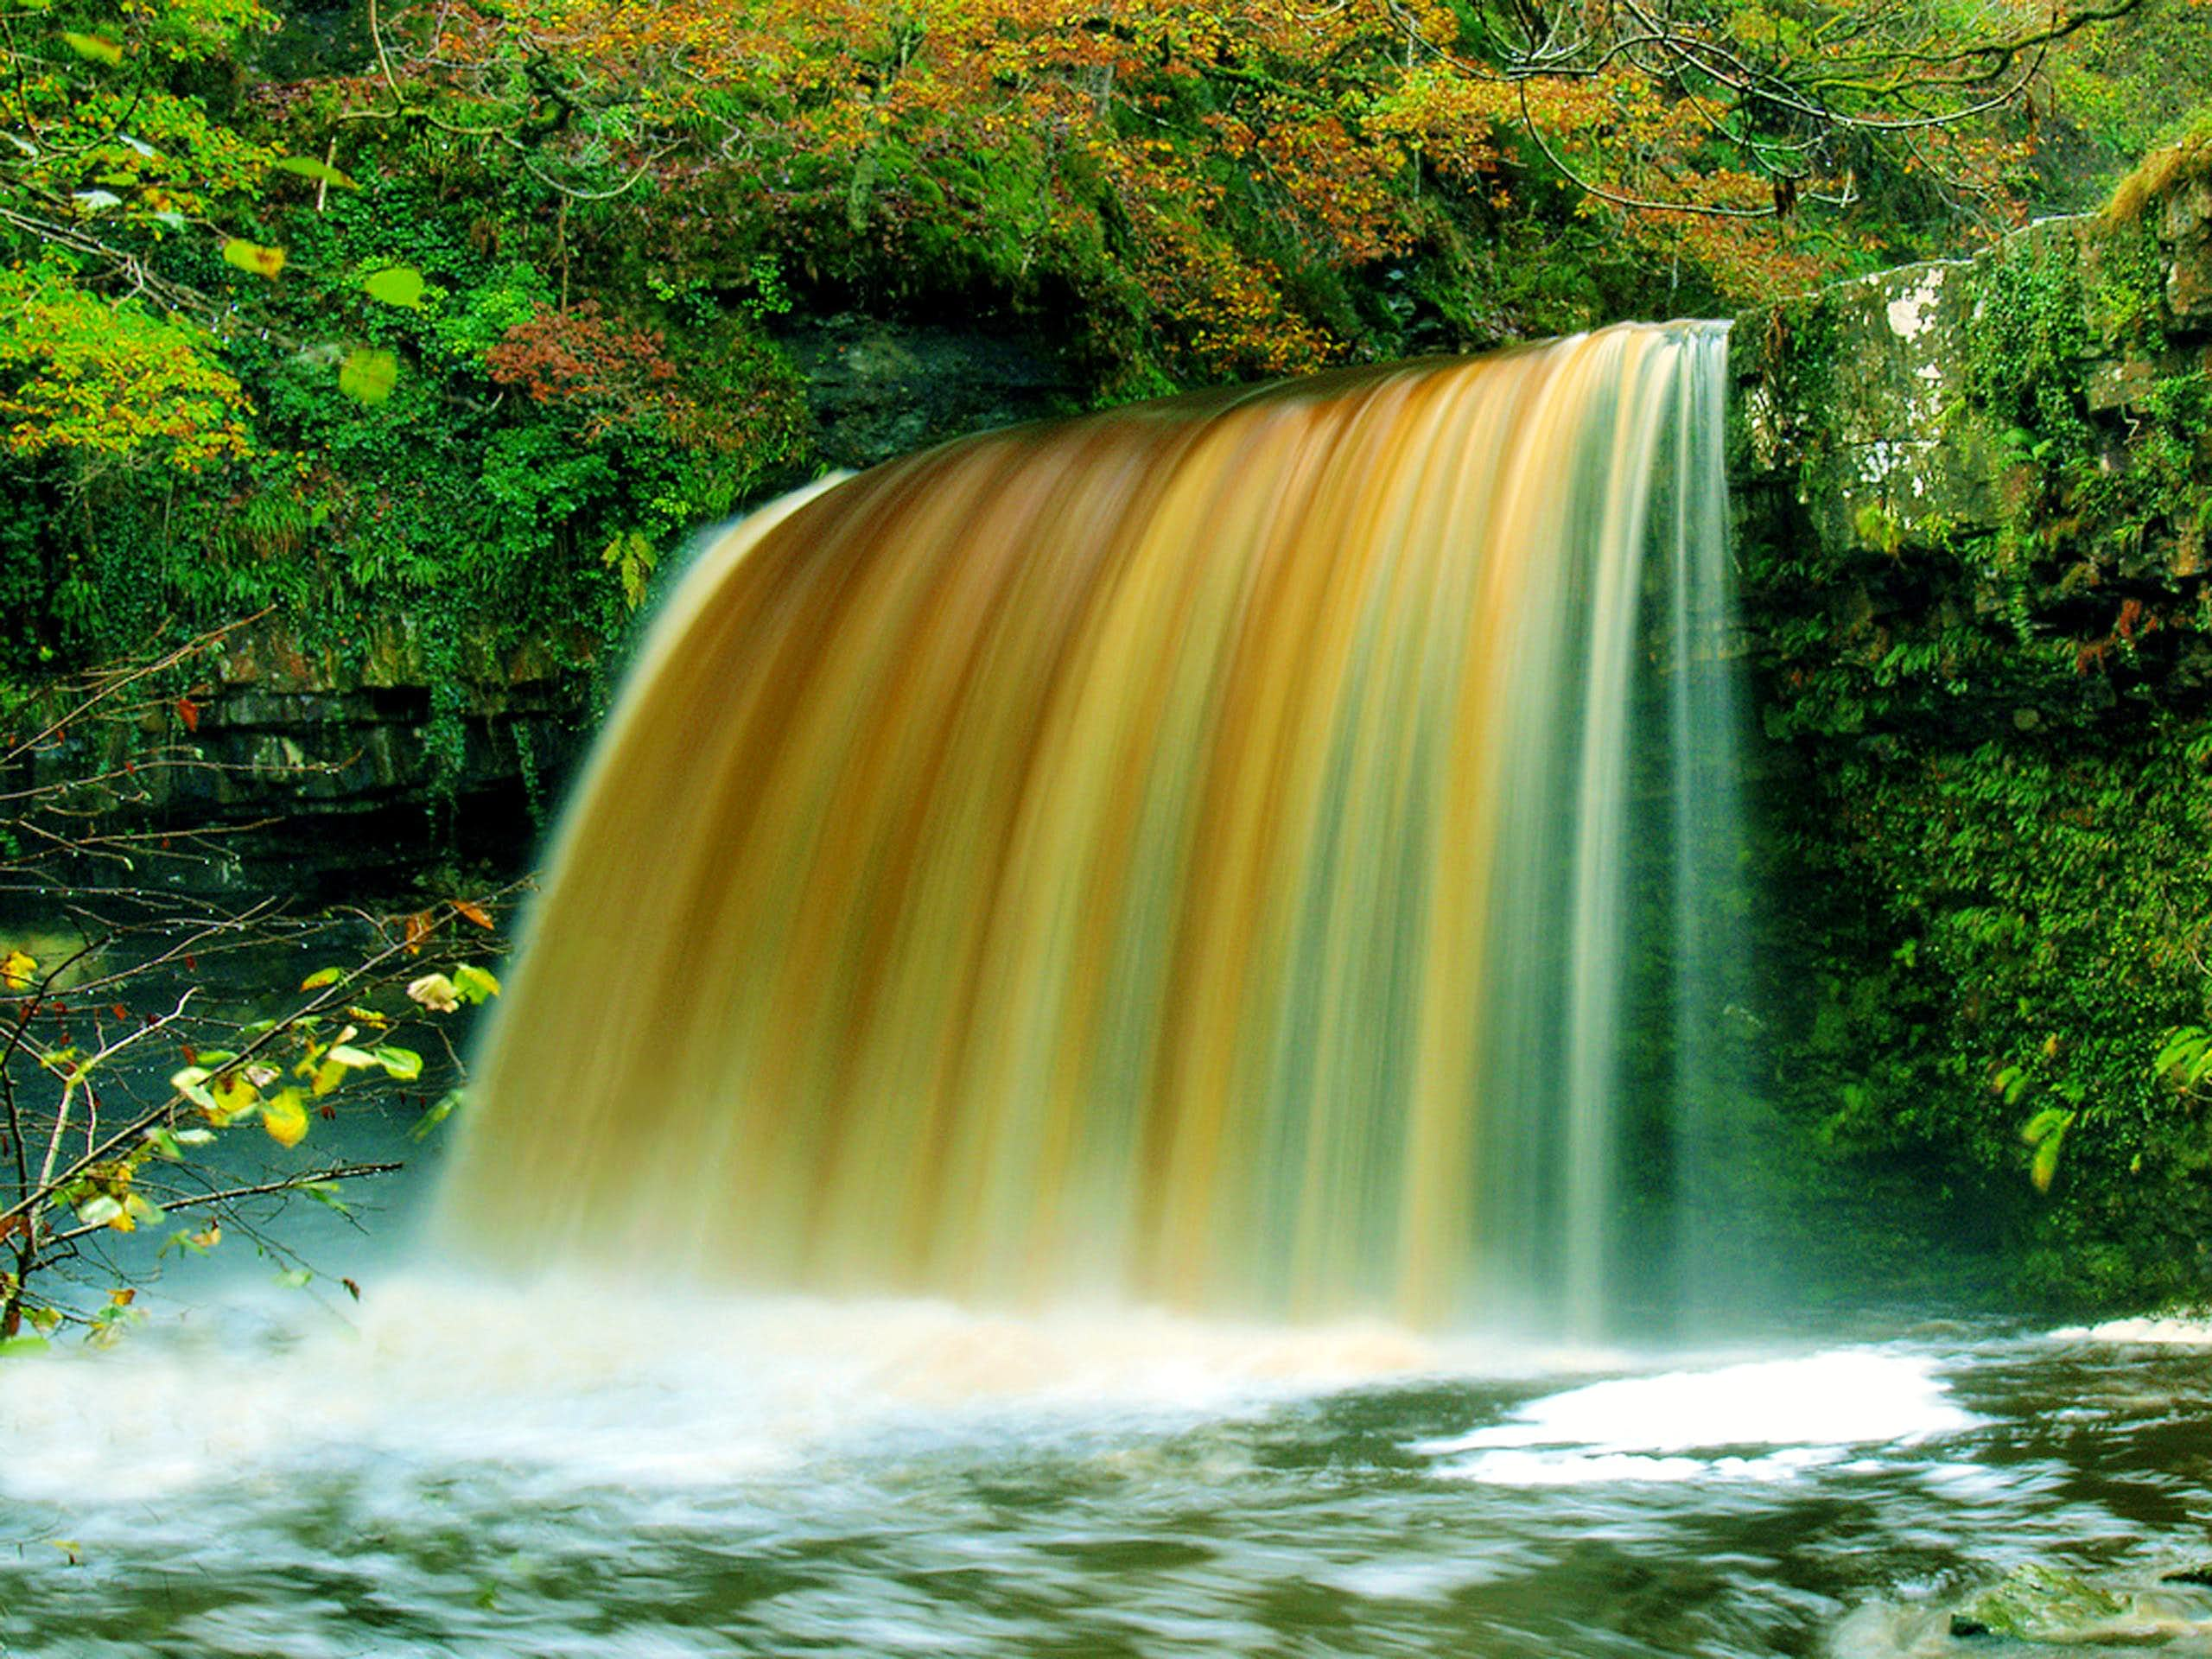 Waterfall Country - Vale of Neath - South Wales - UK